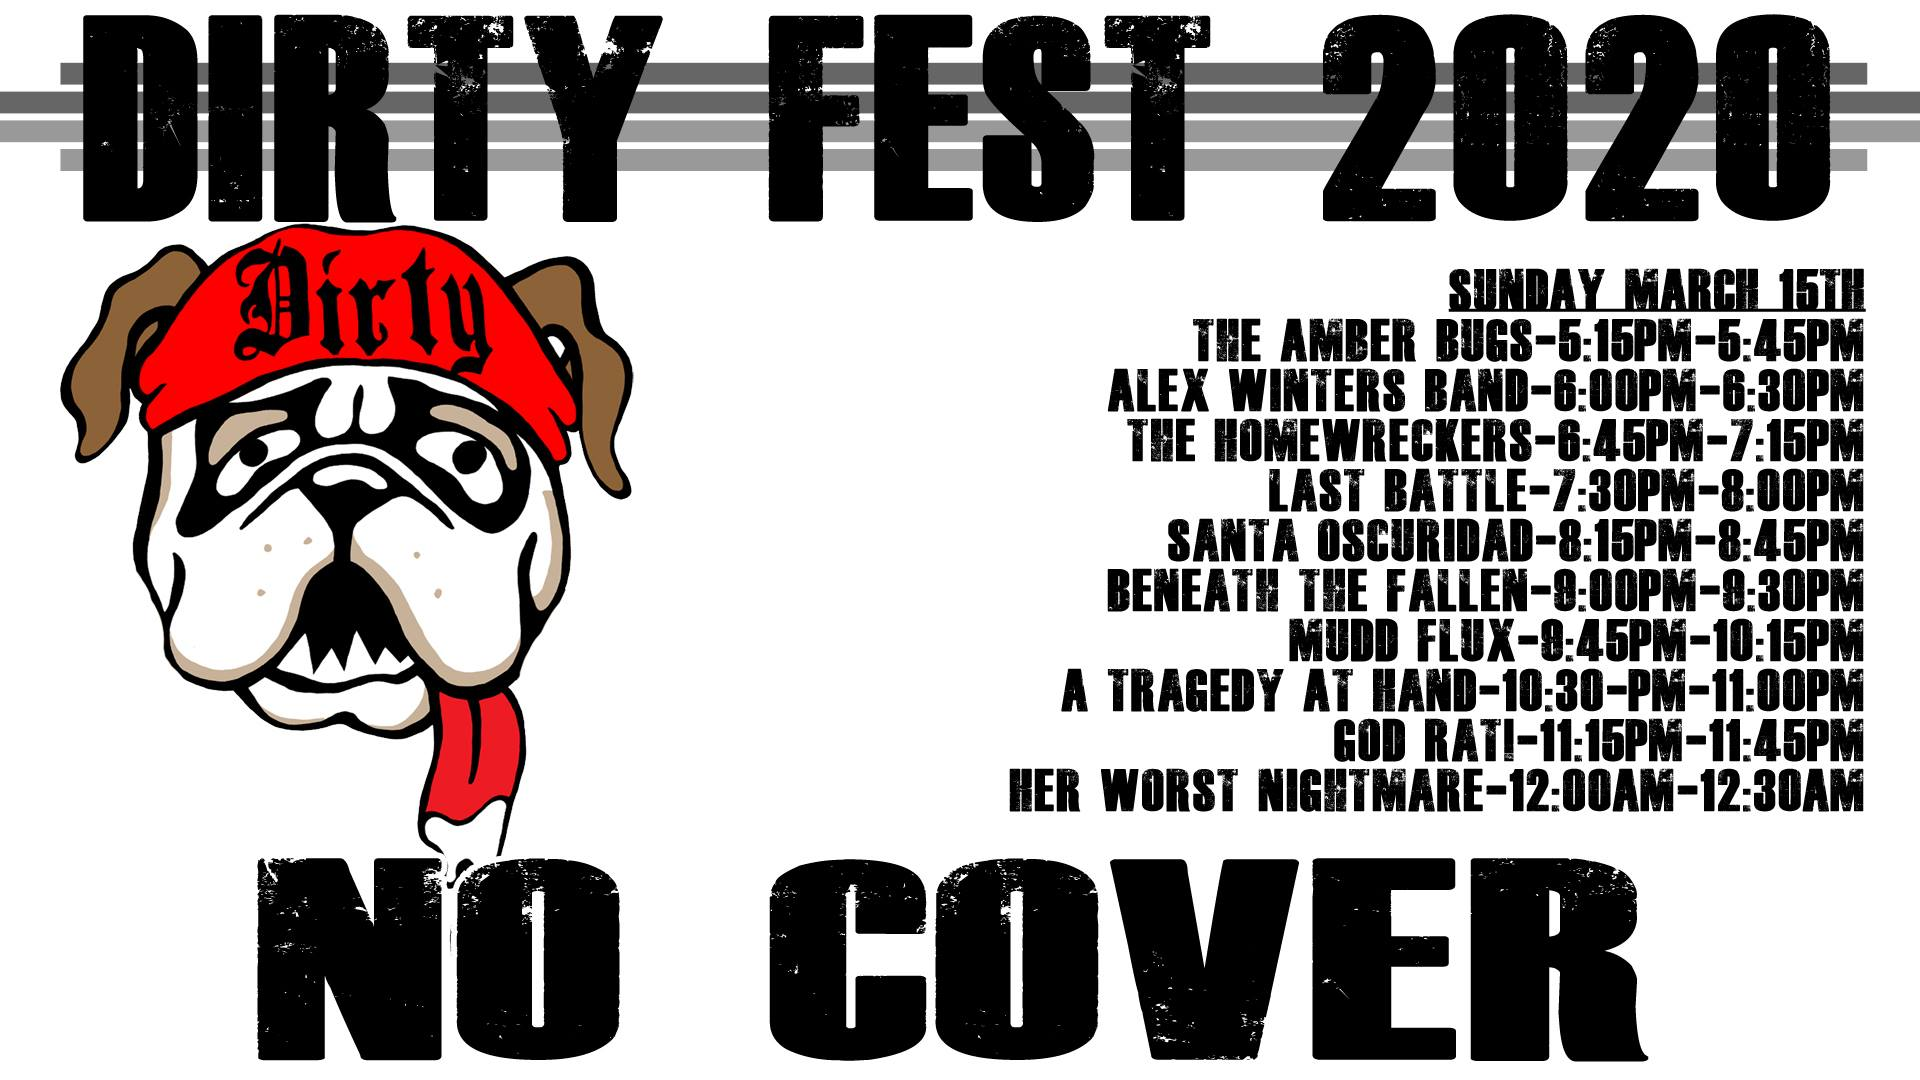 Dirty Fest 2020 - Sunday